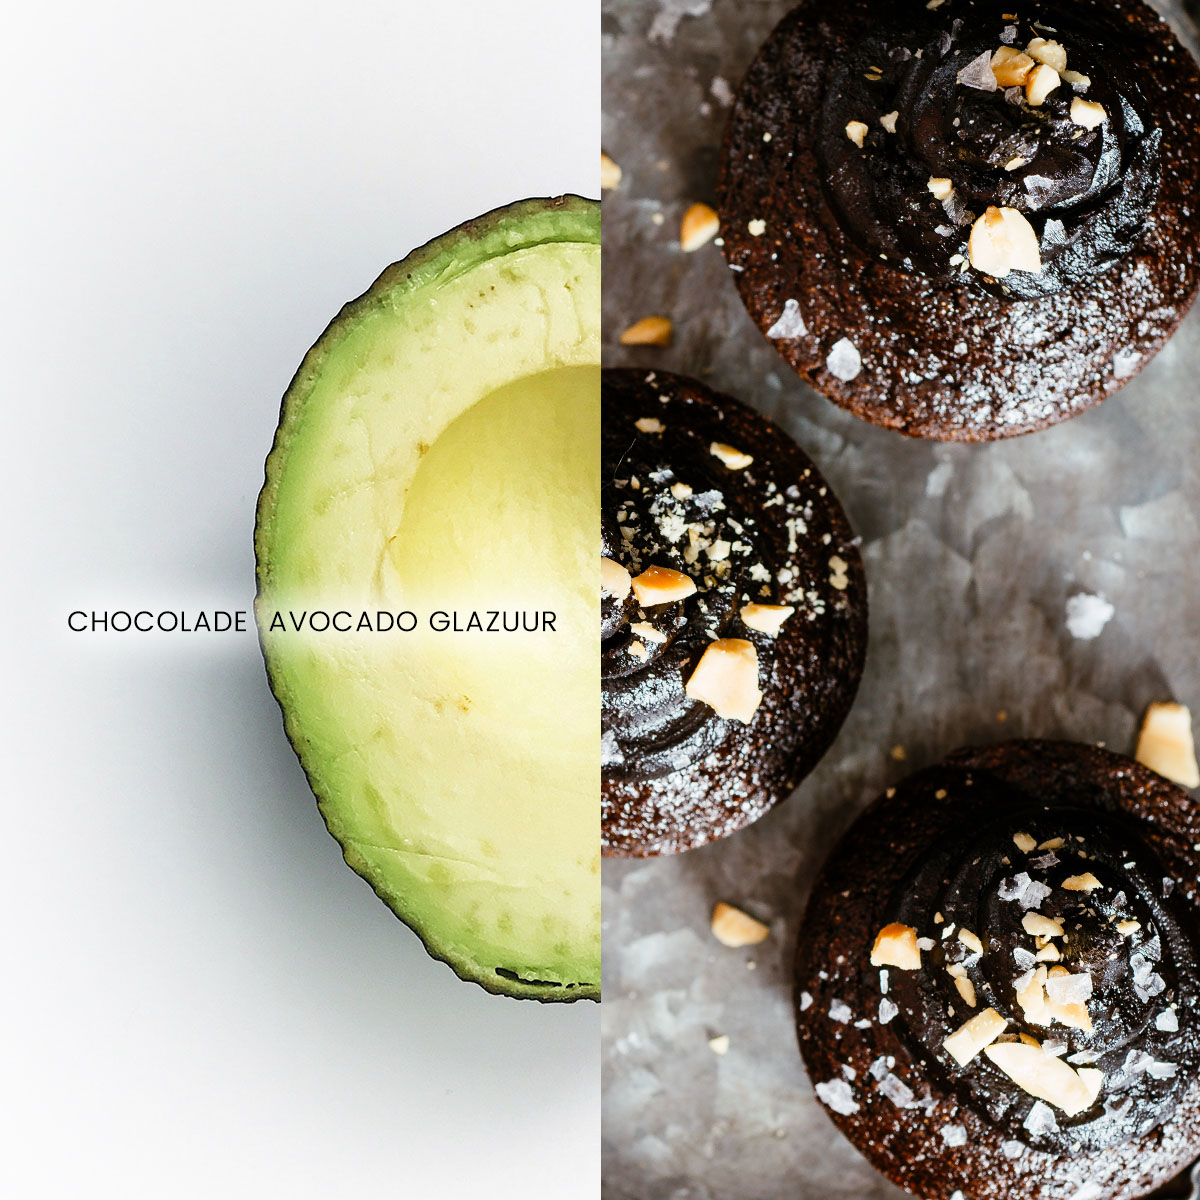 Empty the Fridge - Chocolade avocado glazuur